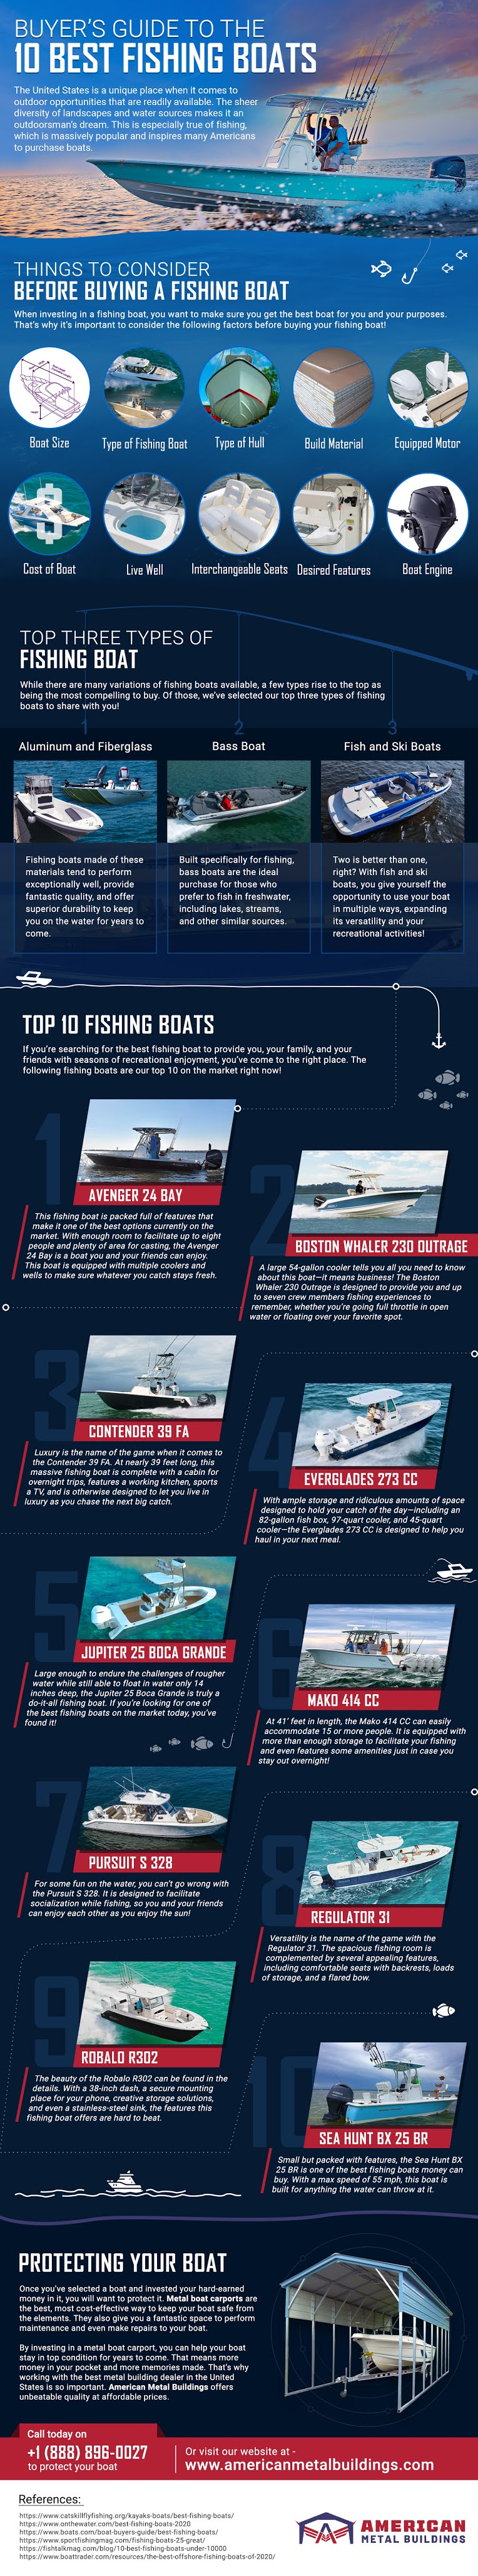 Buyer's Guide to the 10 Best Fishing Boats #infographic #Home Improvement